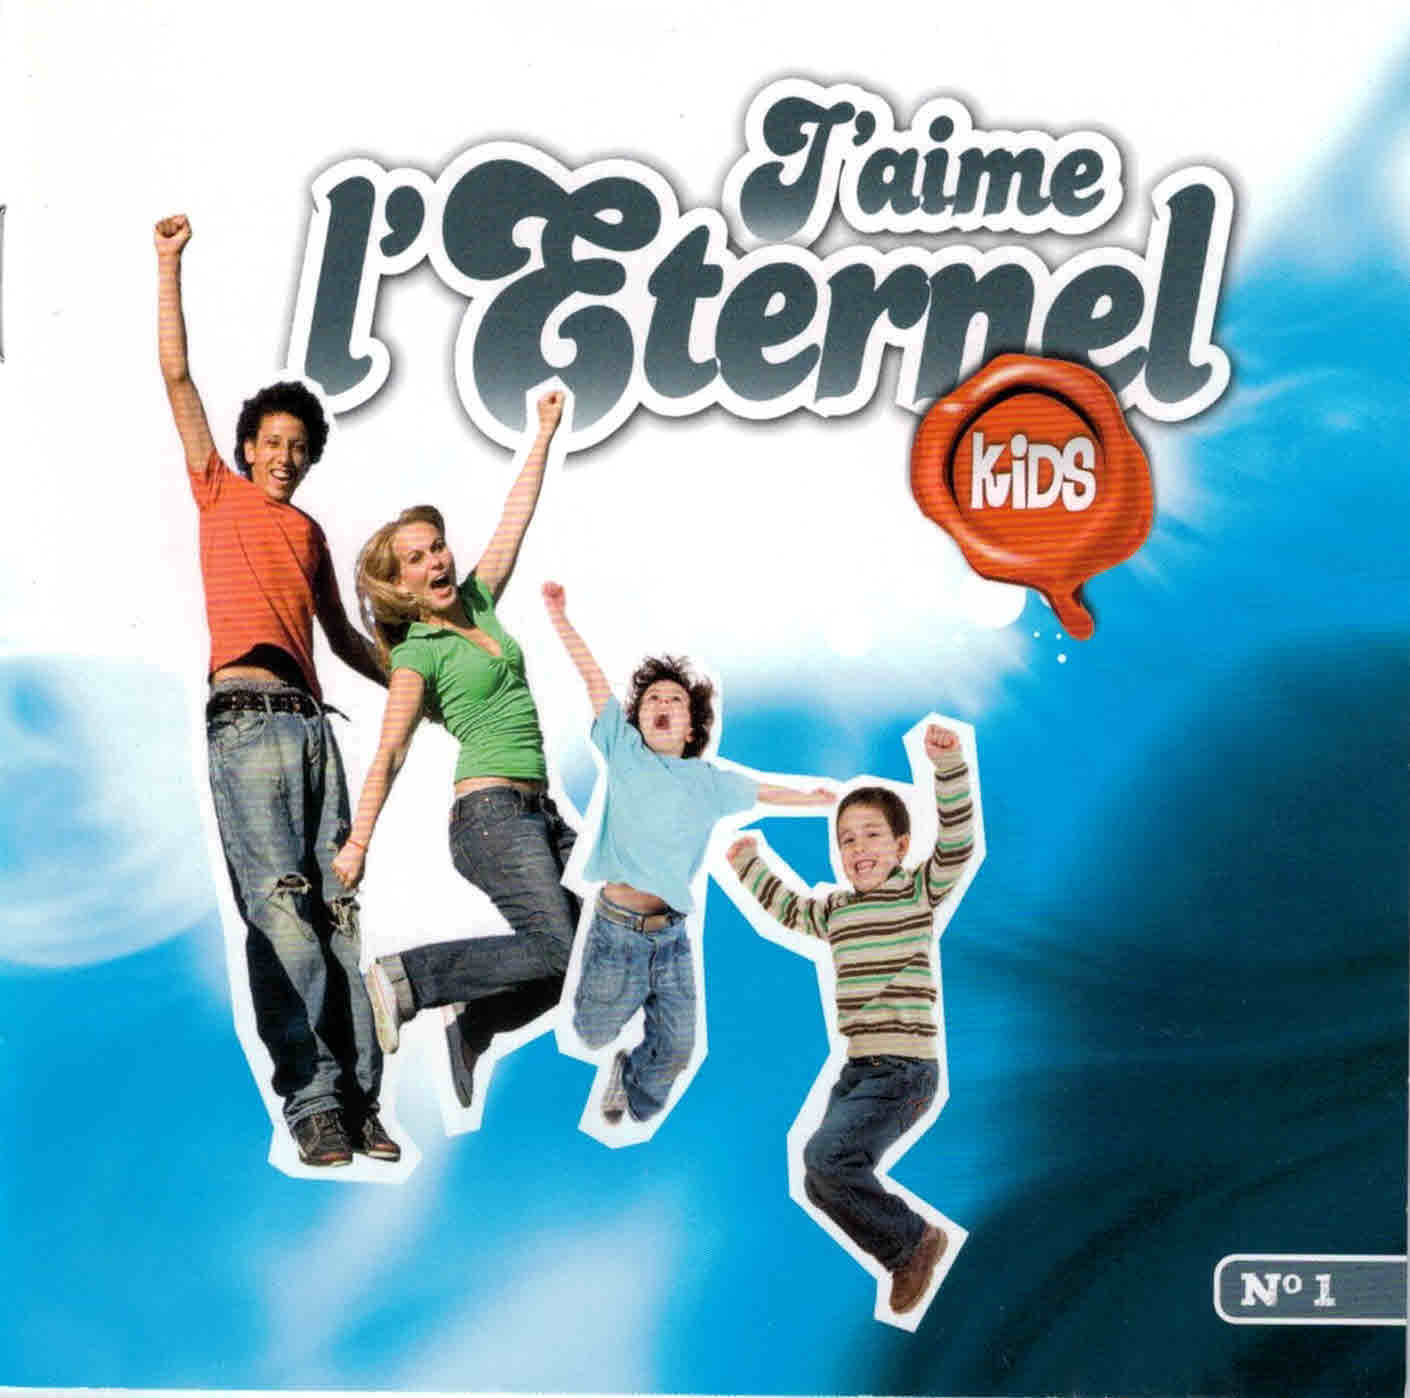 CD J'aime l'Éternel Kids no 1